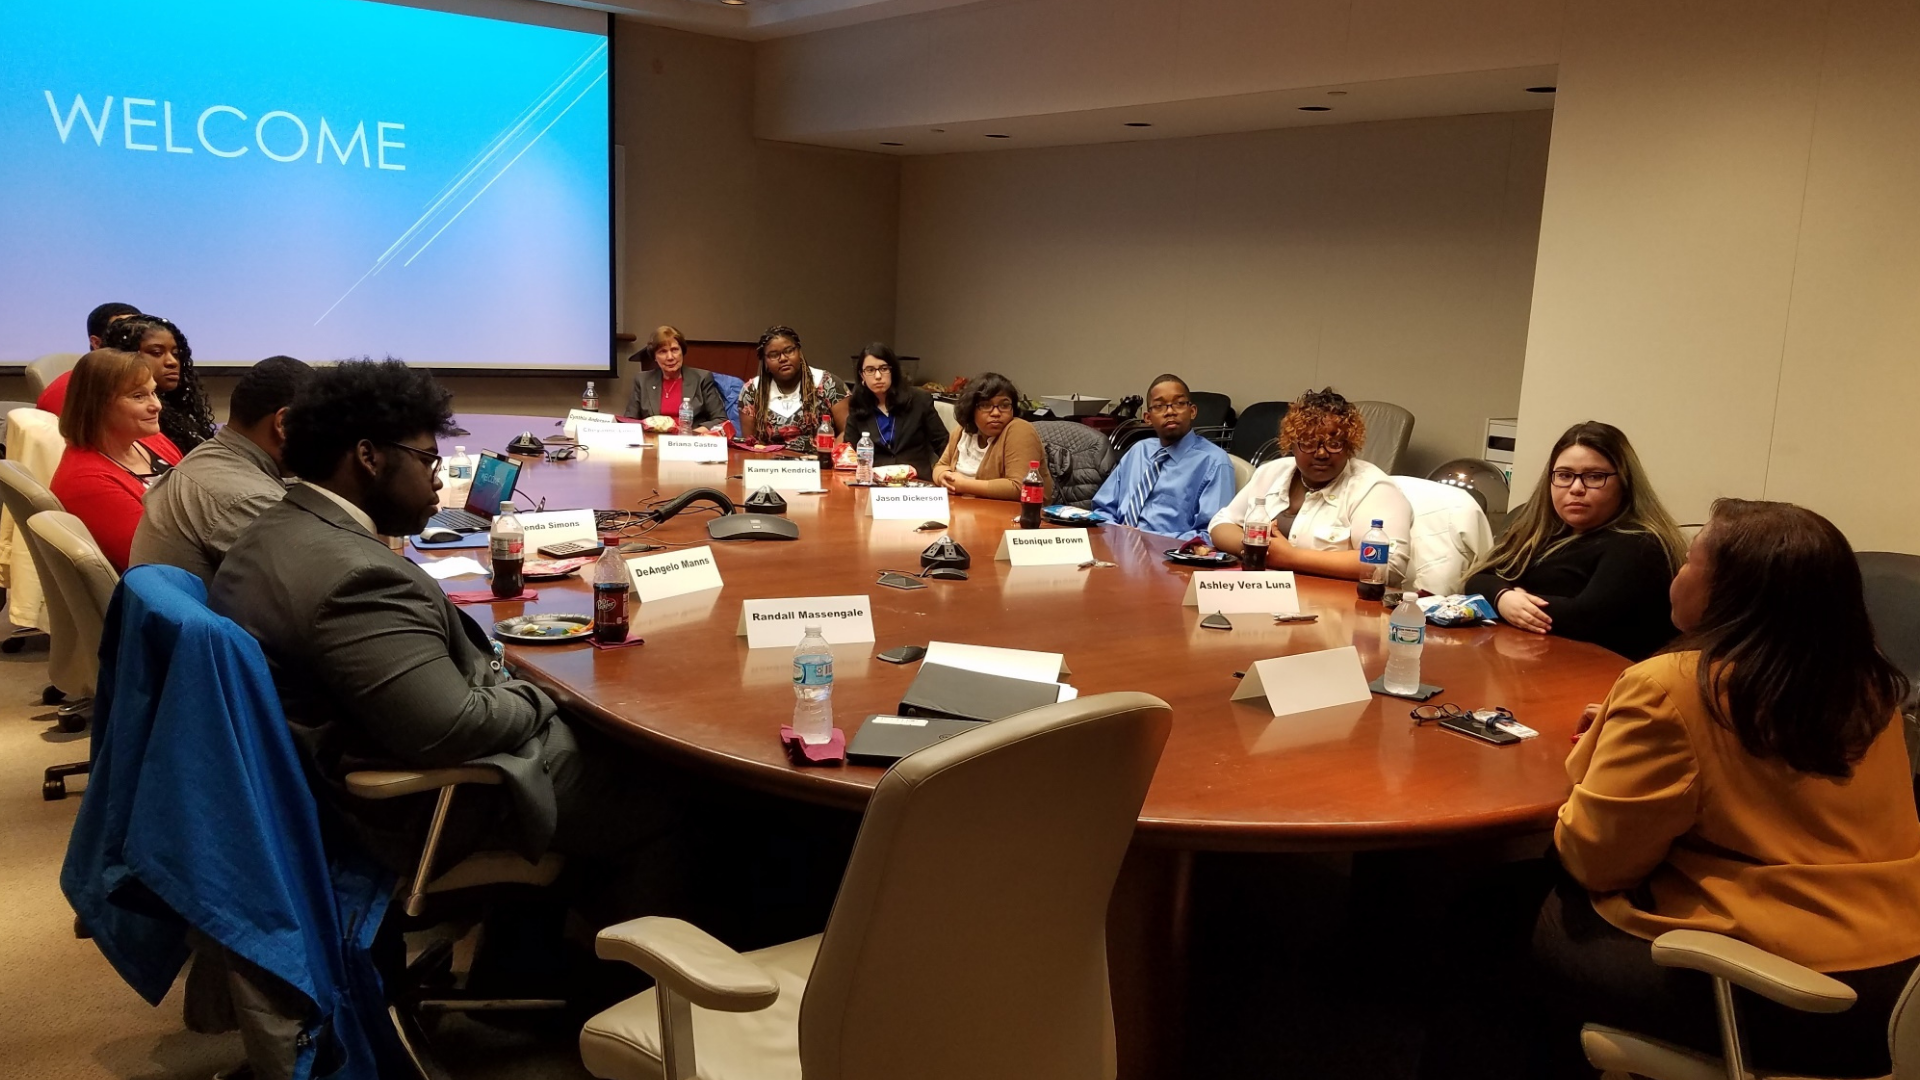 A group of students sits at a large boardroom table with Lisa Cash, the Vice President of Quality and New Product Launch at Ford Motor Company